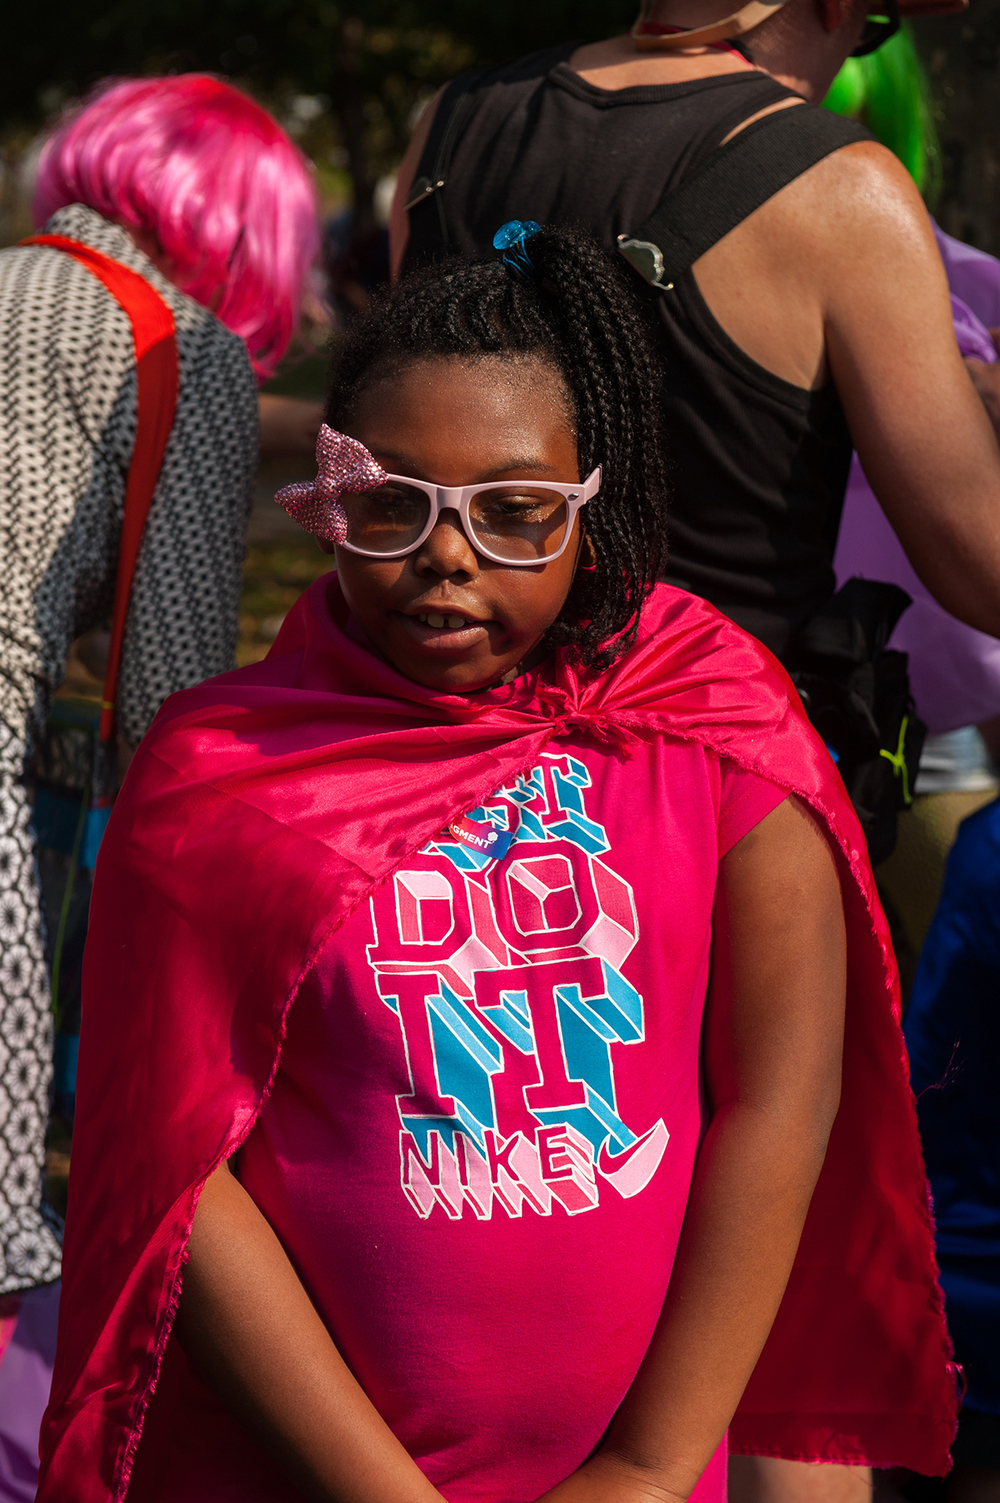 figment philly 2013 kn15.jpg